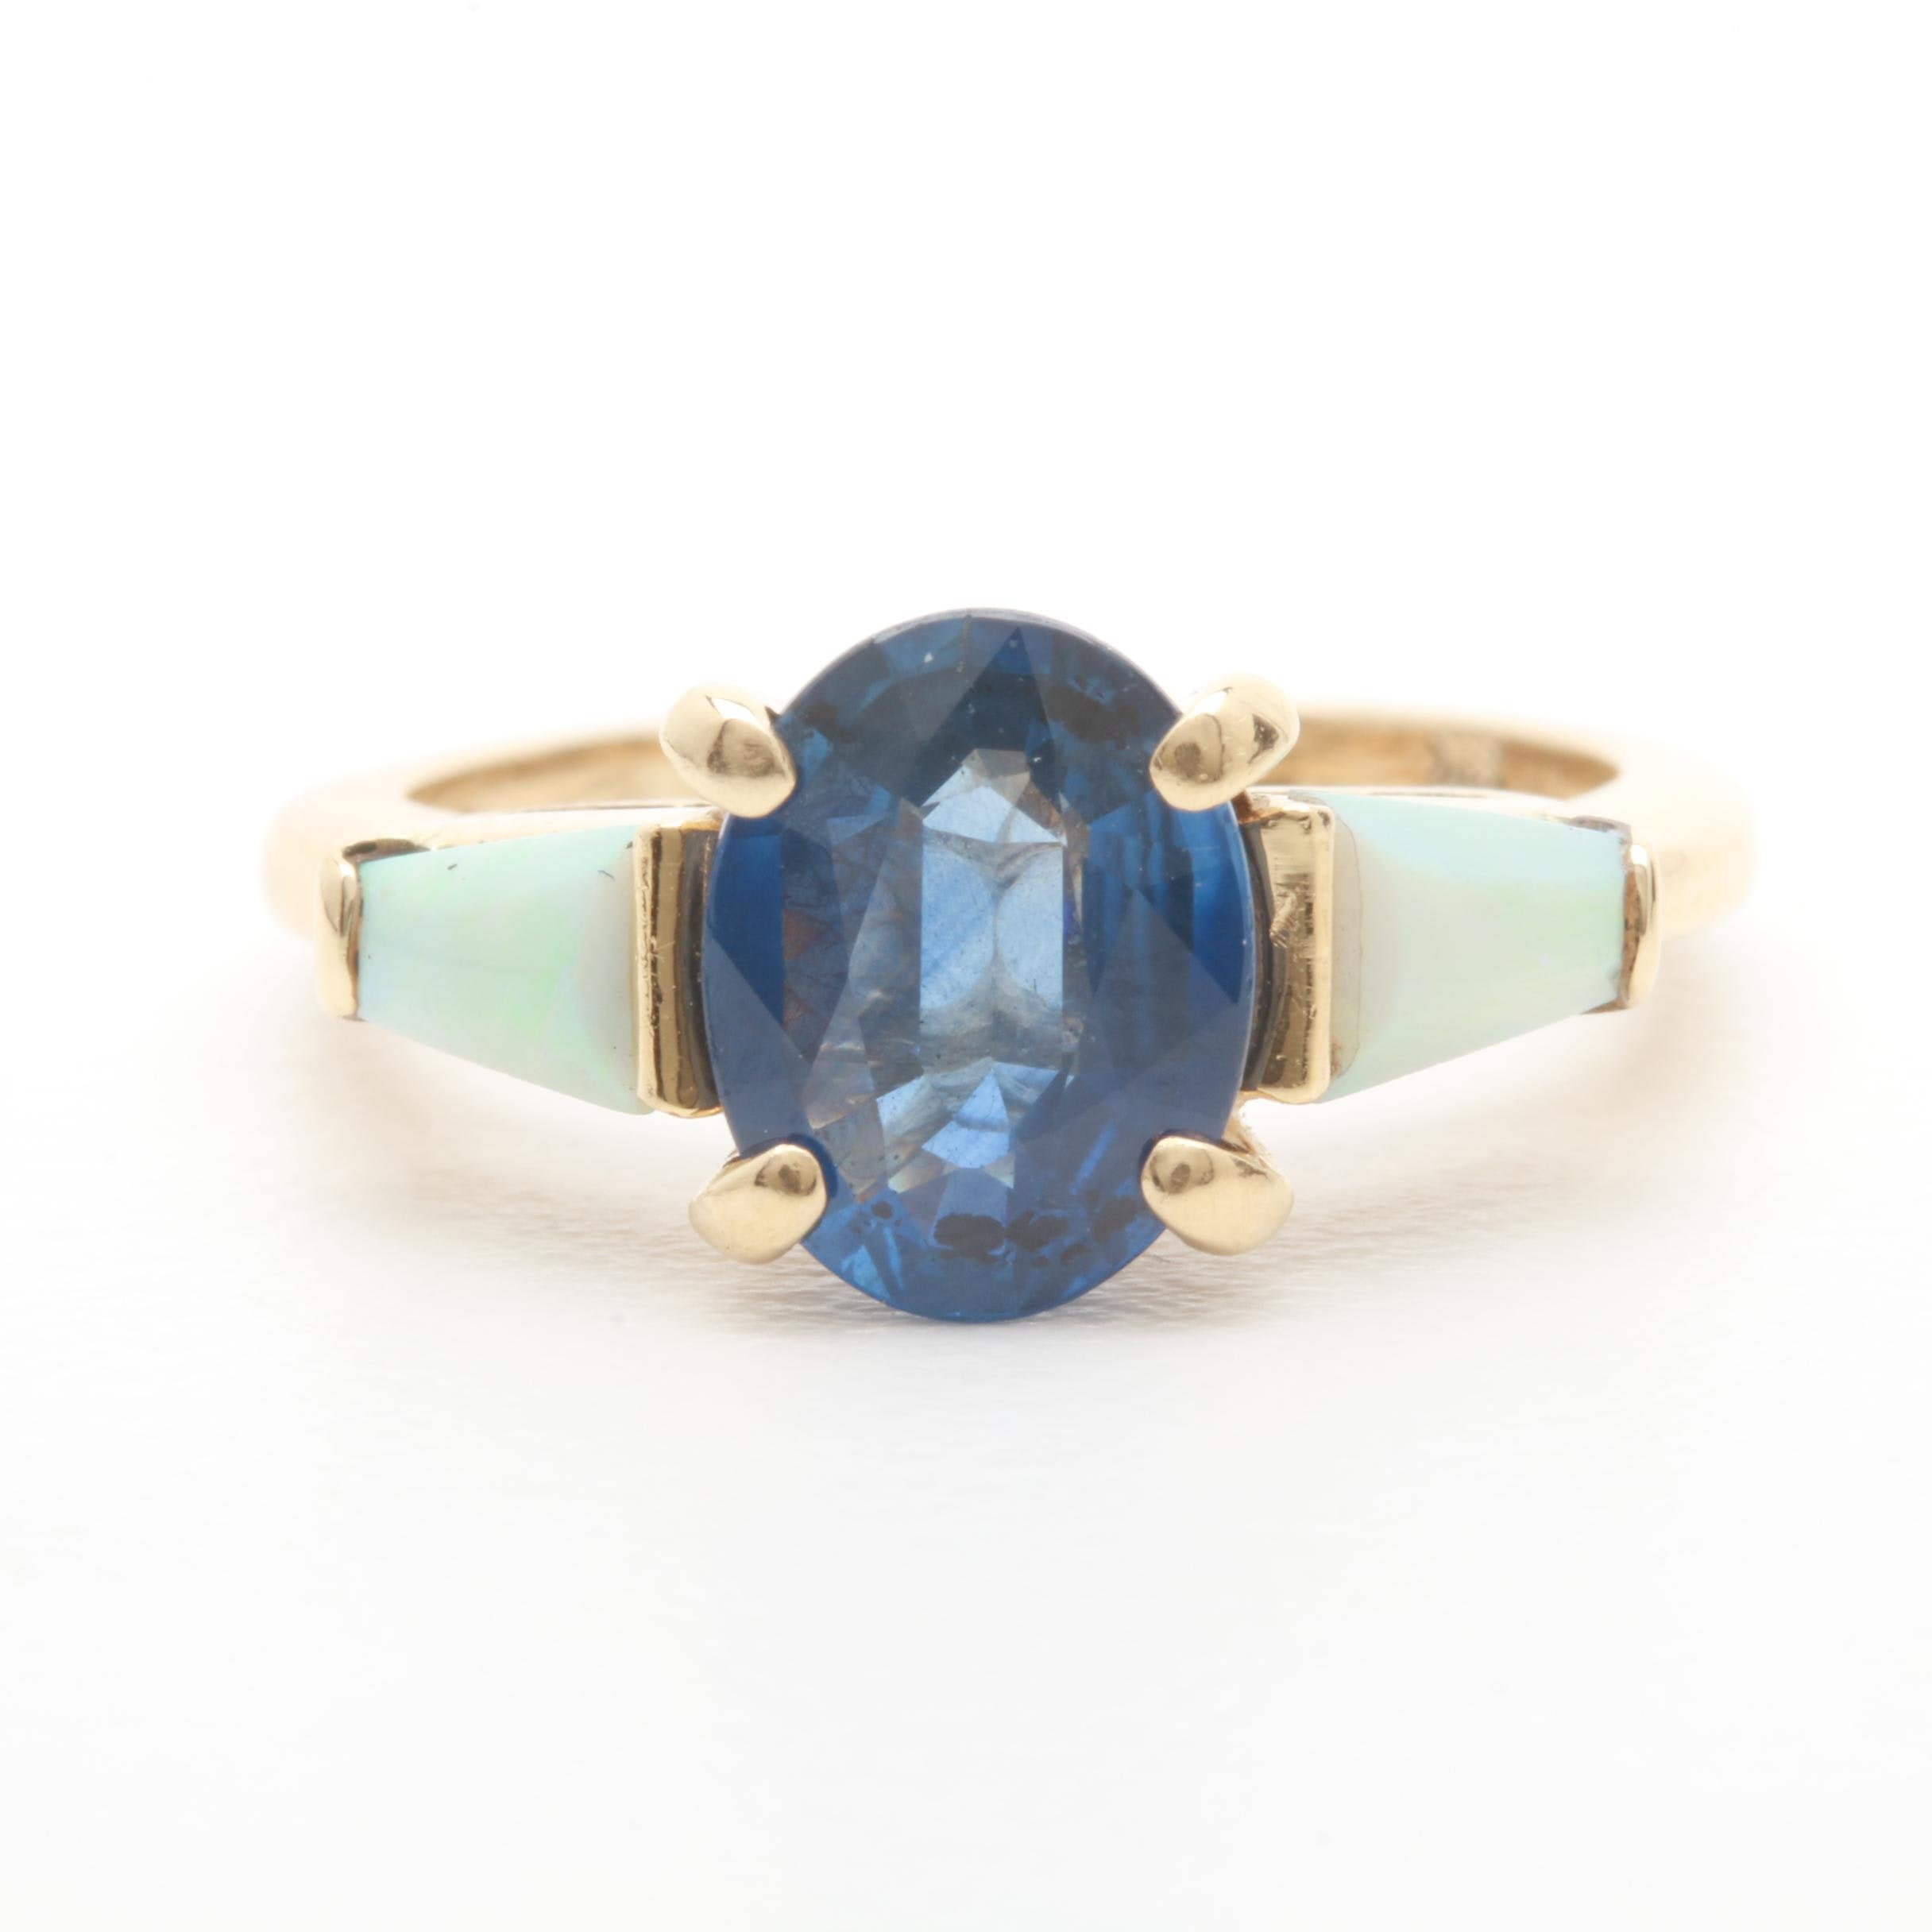 14K Yellow Gold 1.61 CT Blue Sapphire and Opal Ring